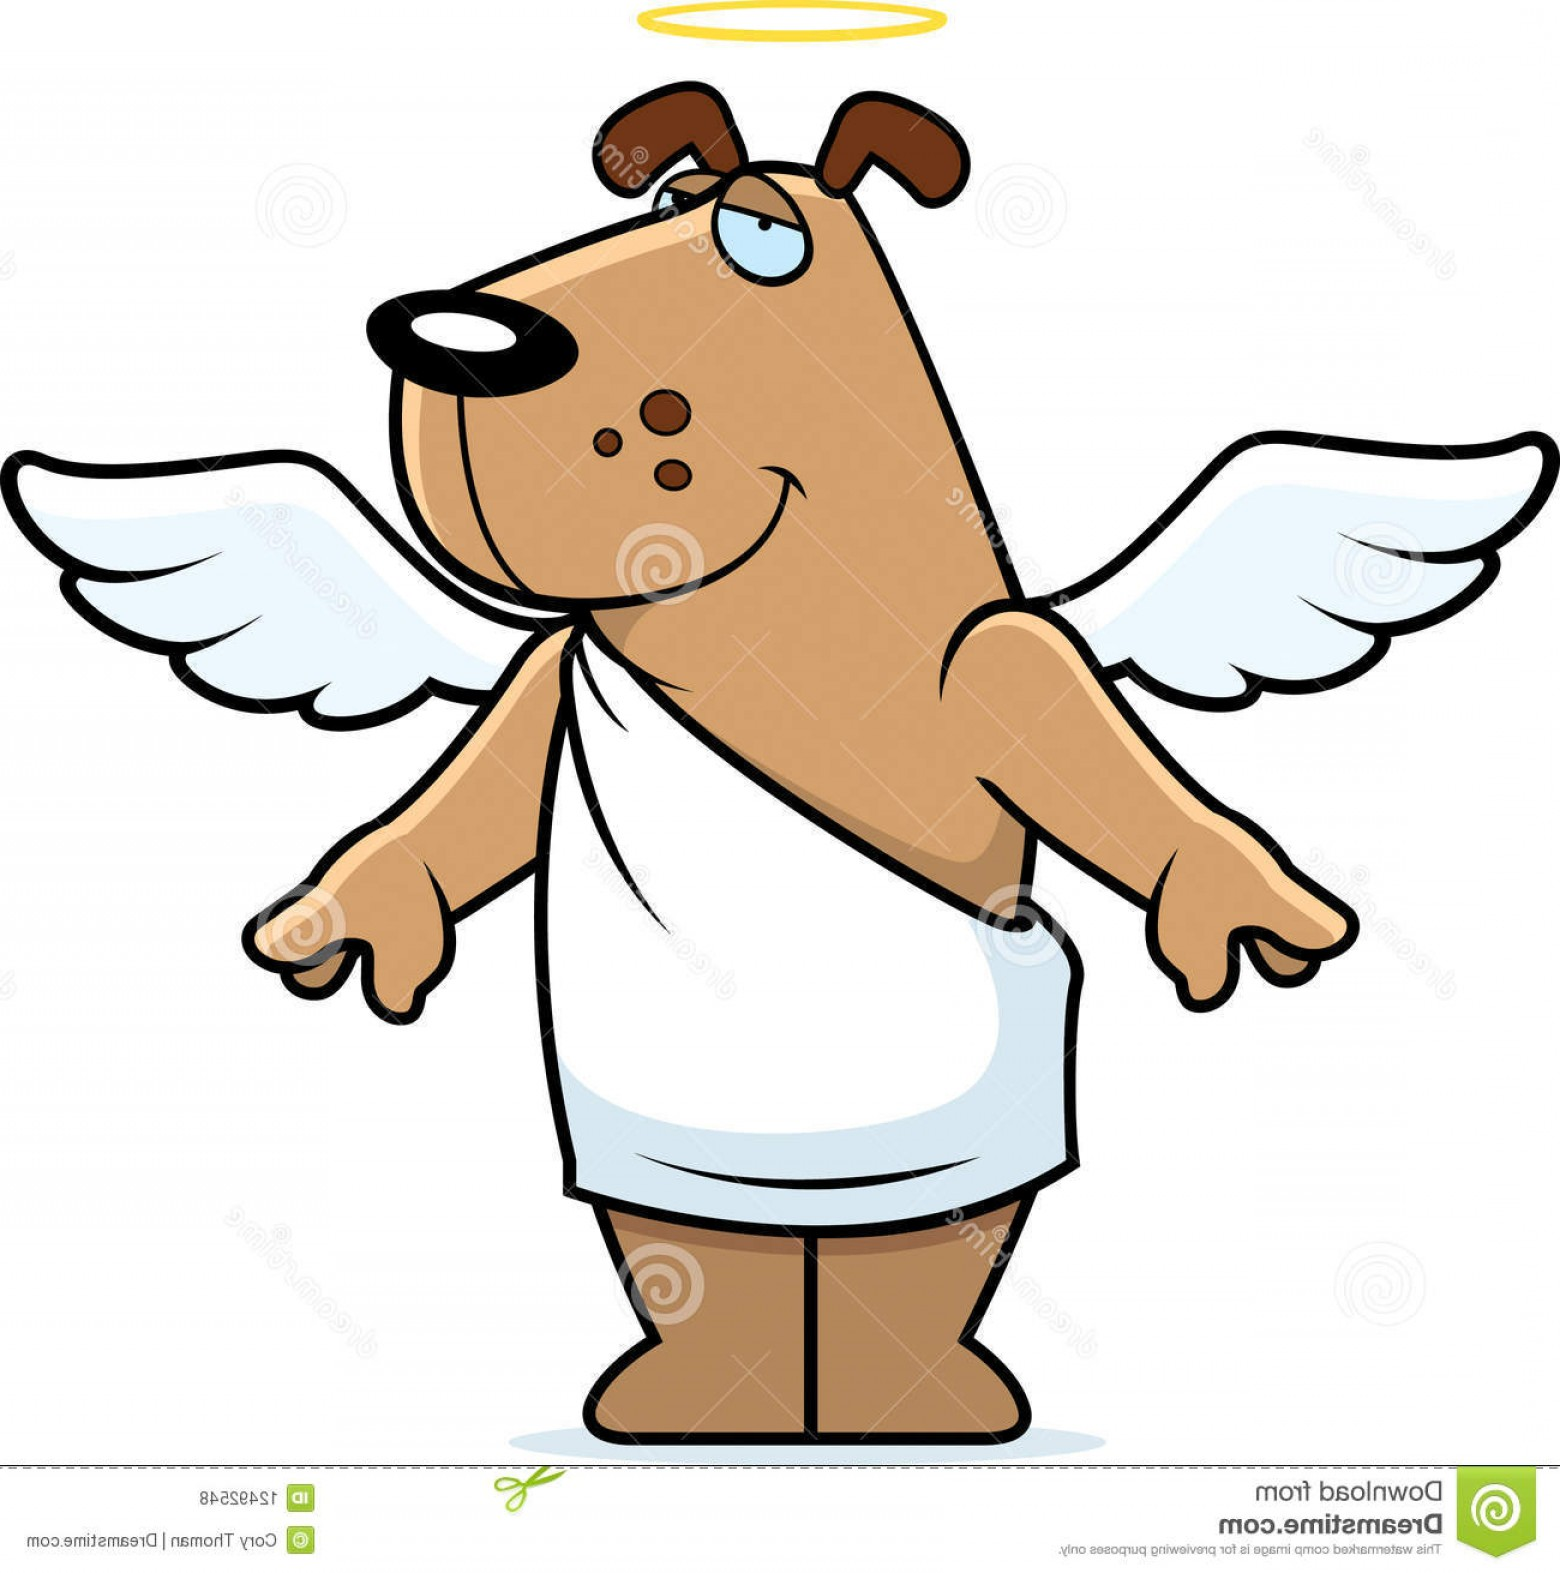 Vector Of Angel Art Dog: Royalty Free Stock Photos Dog Angel Image